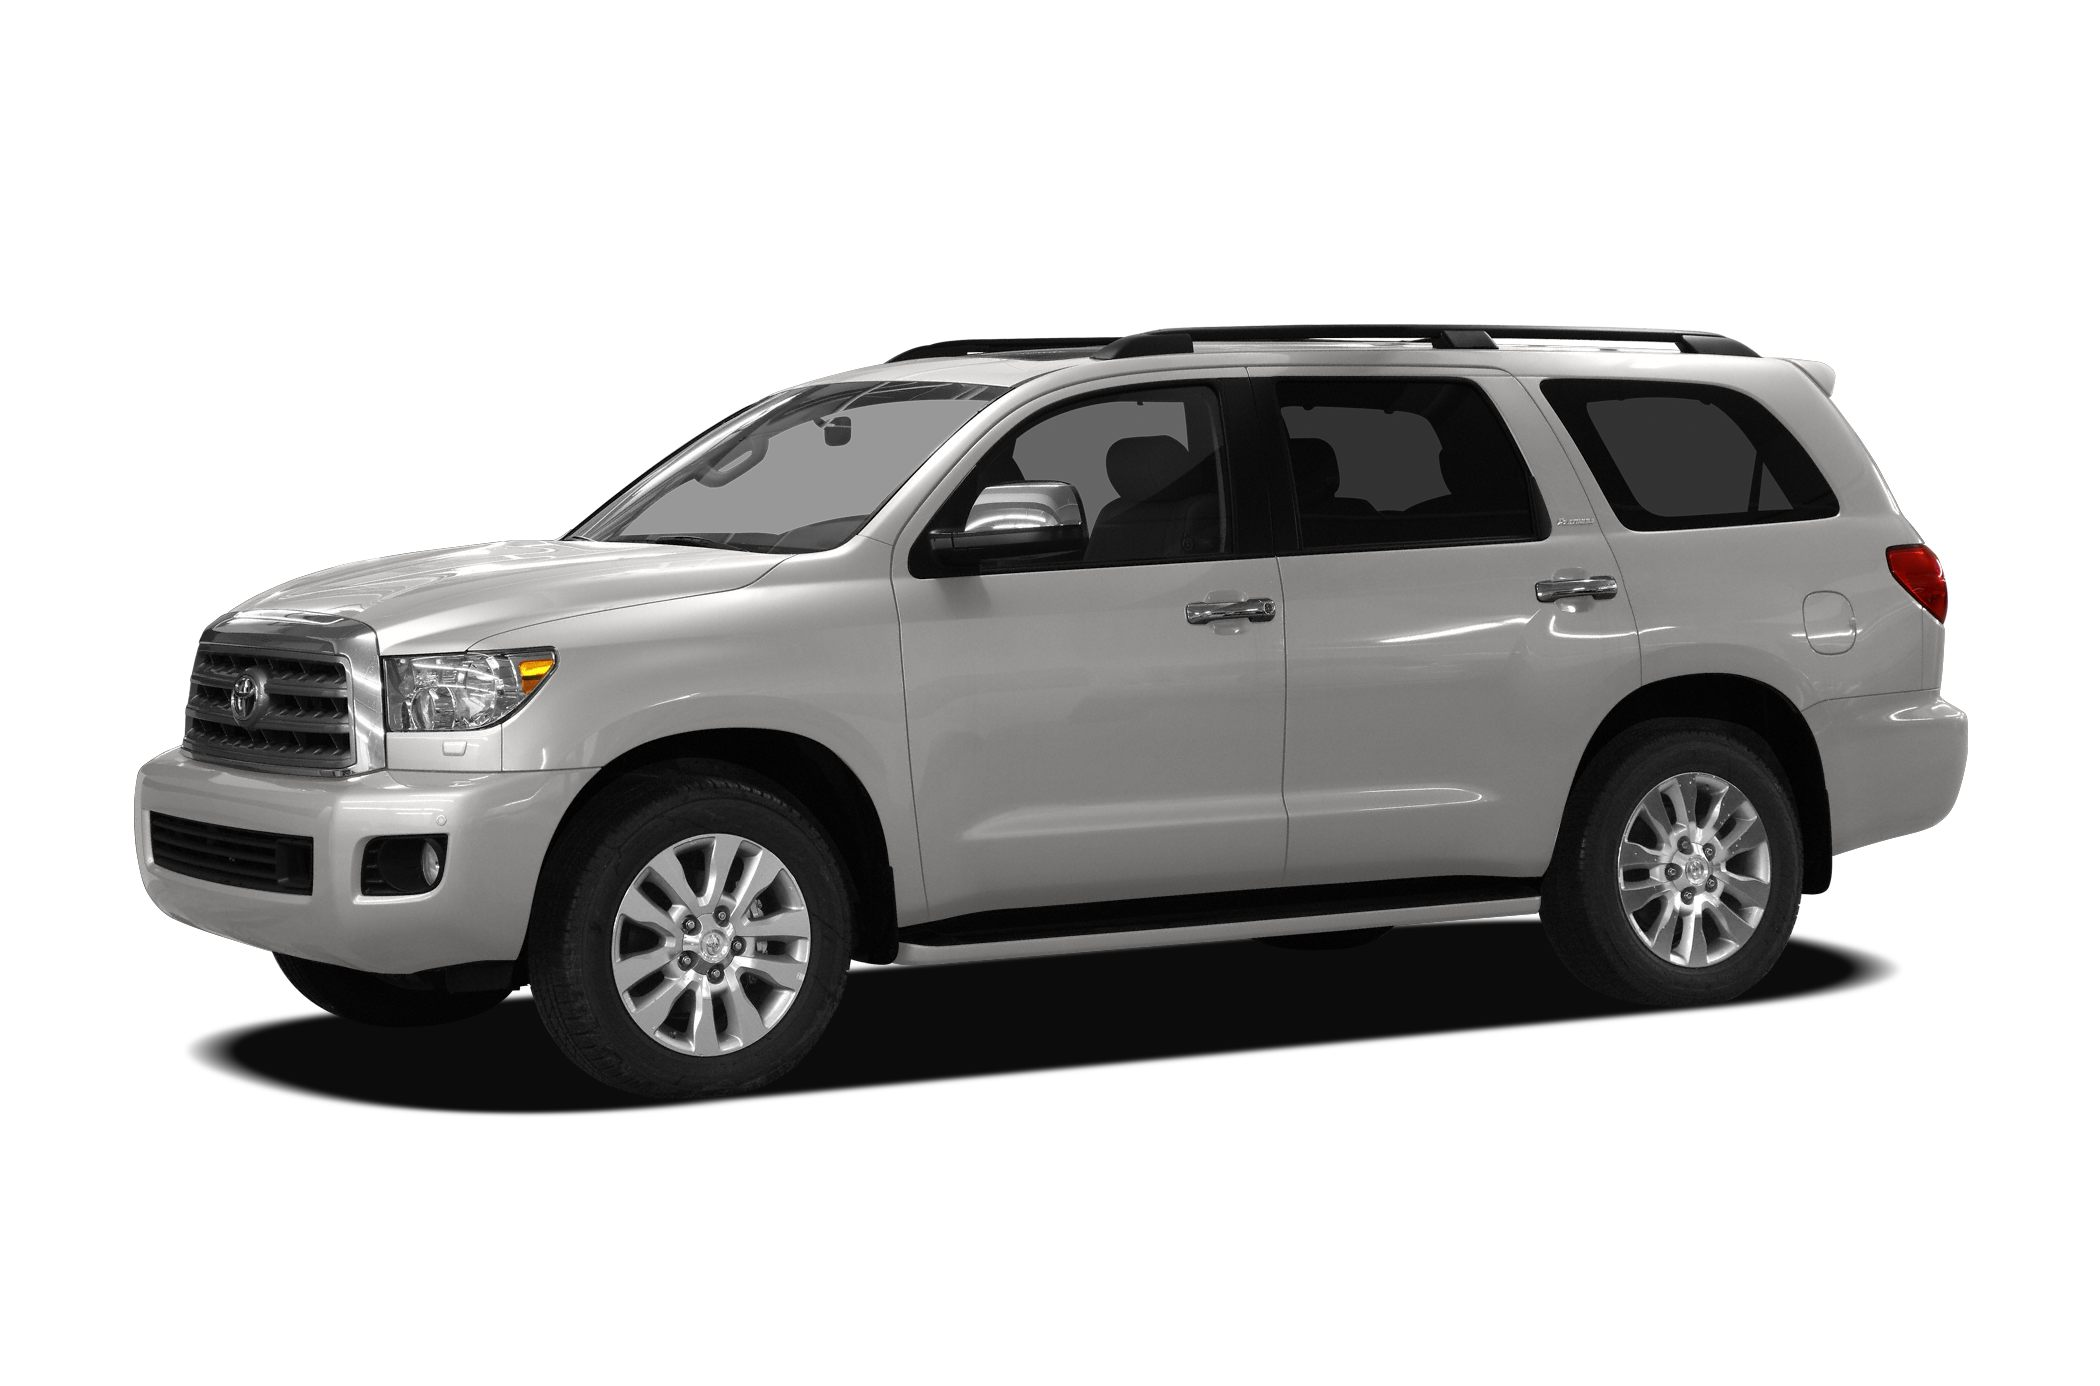 2011 Toyota Sequoia Limited SUV for sale in Dallas for $35,449 with 53,040 miles